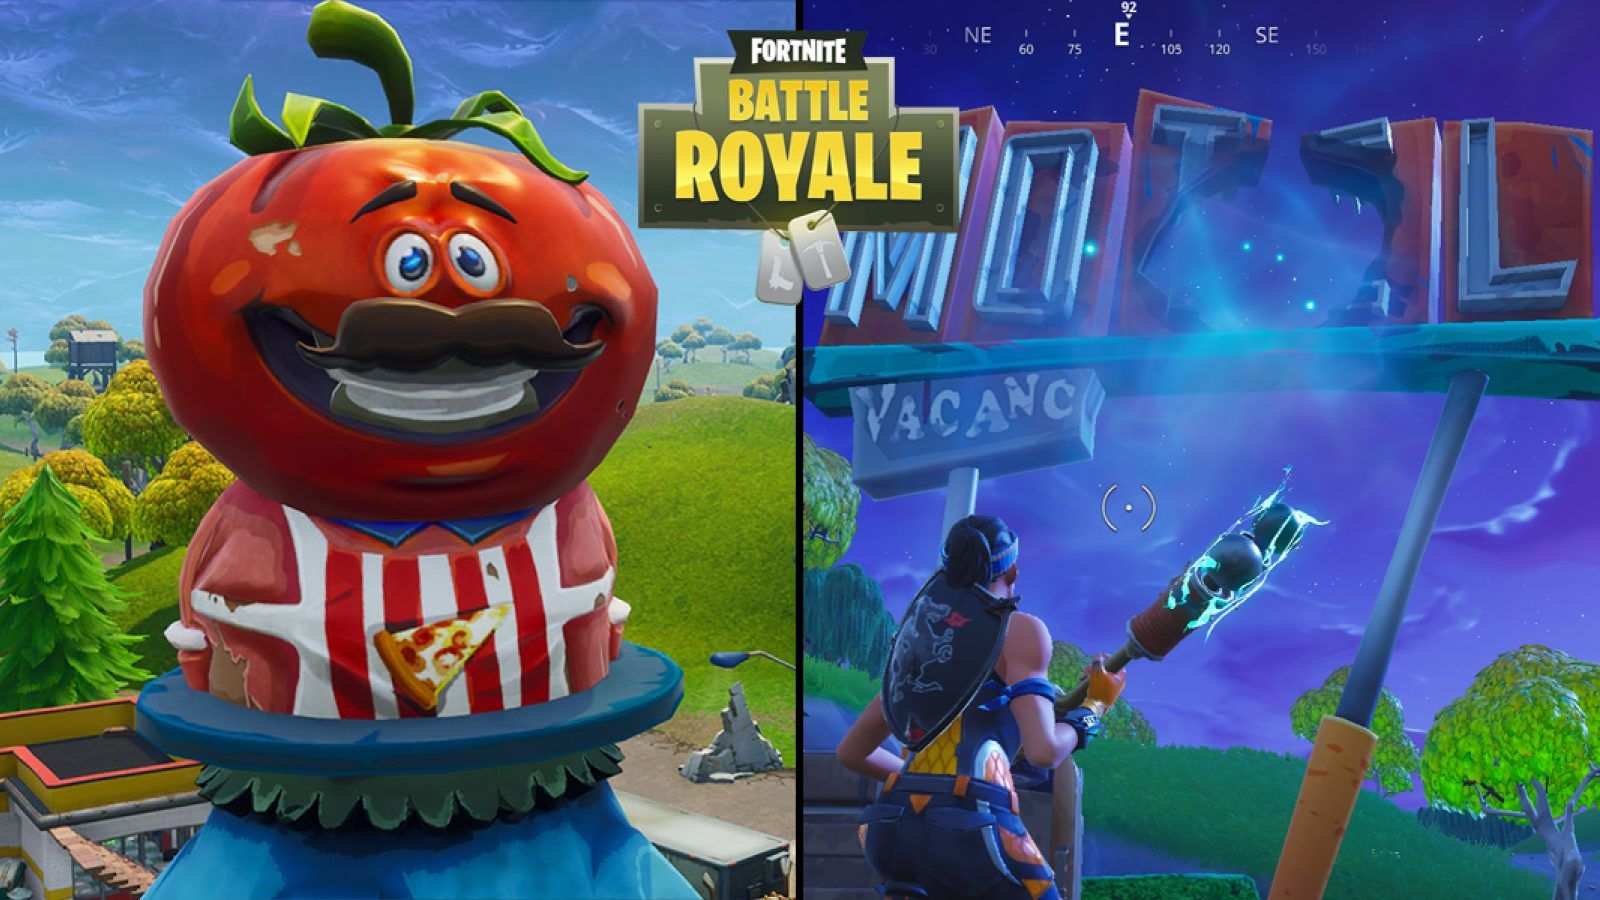 Another Portal Has Appeared in Fortnite's Tomato Town and the Motel